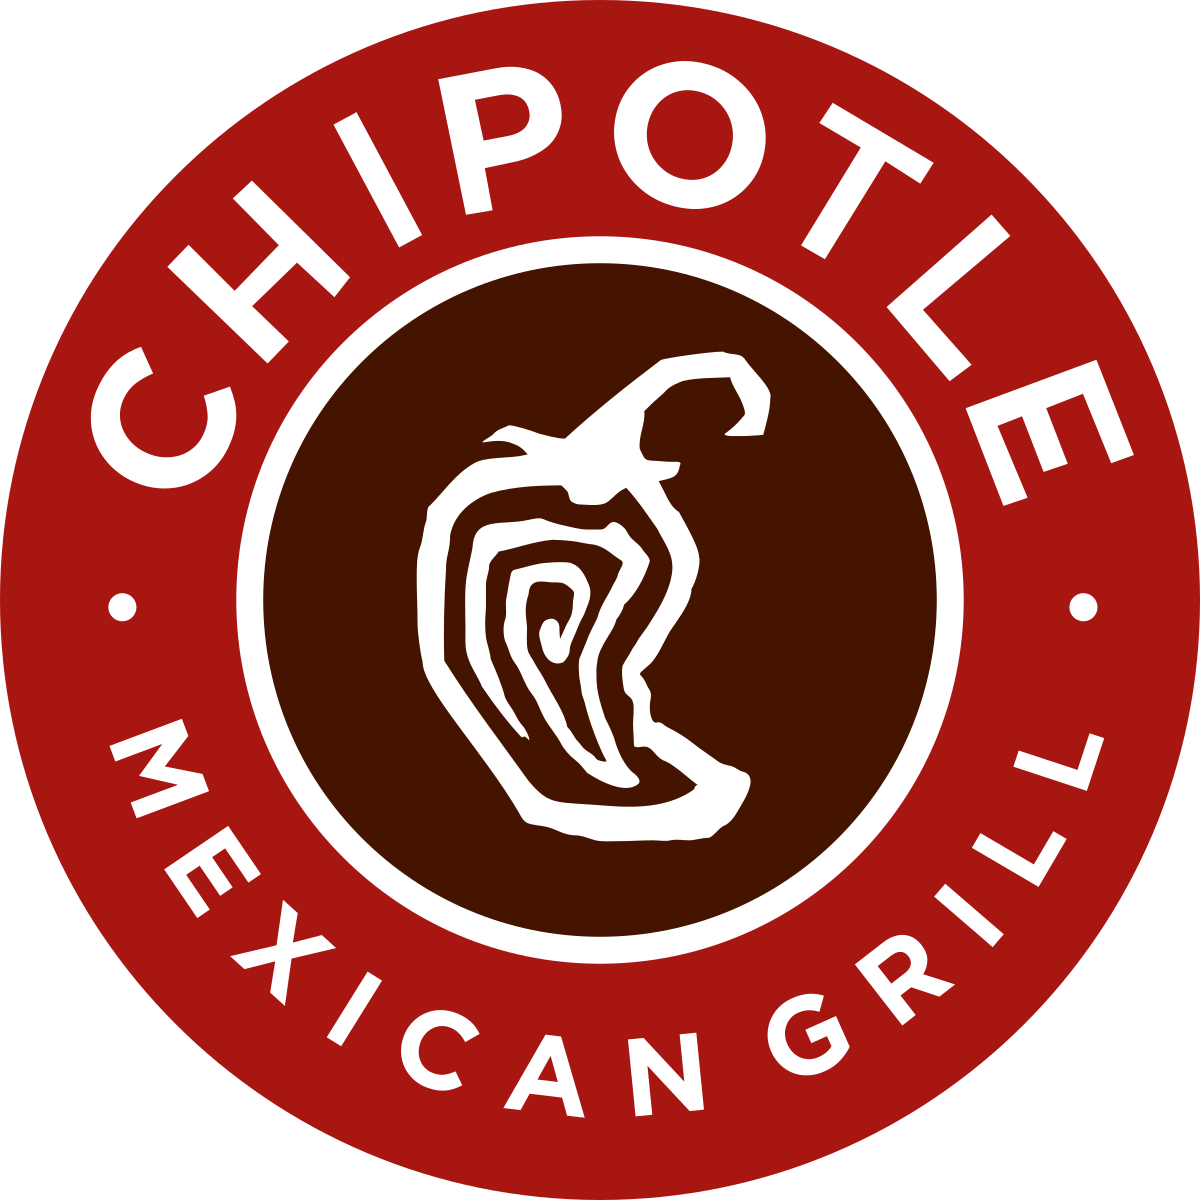 Chipotle - Port Arthur